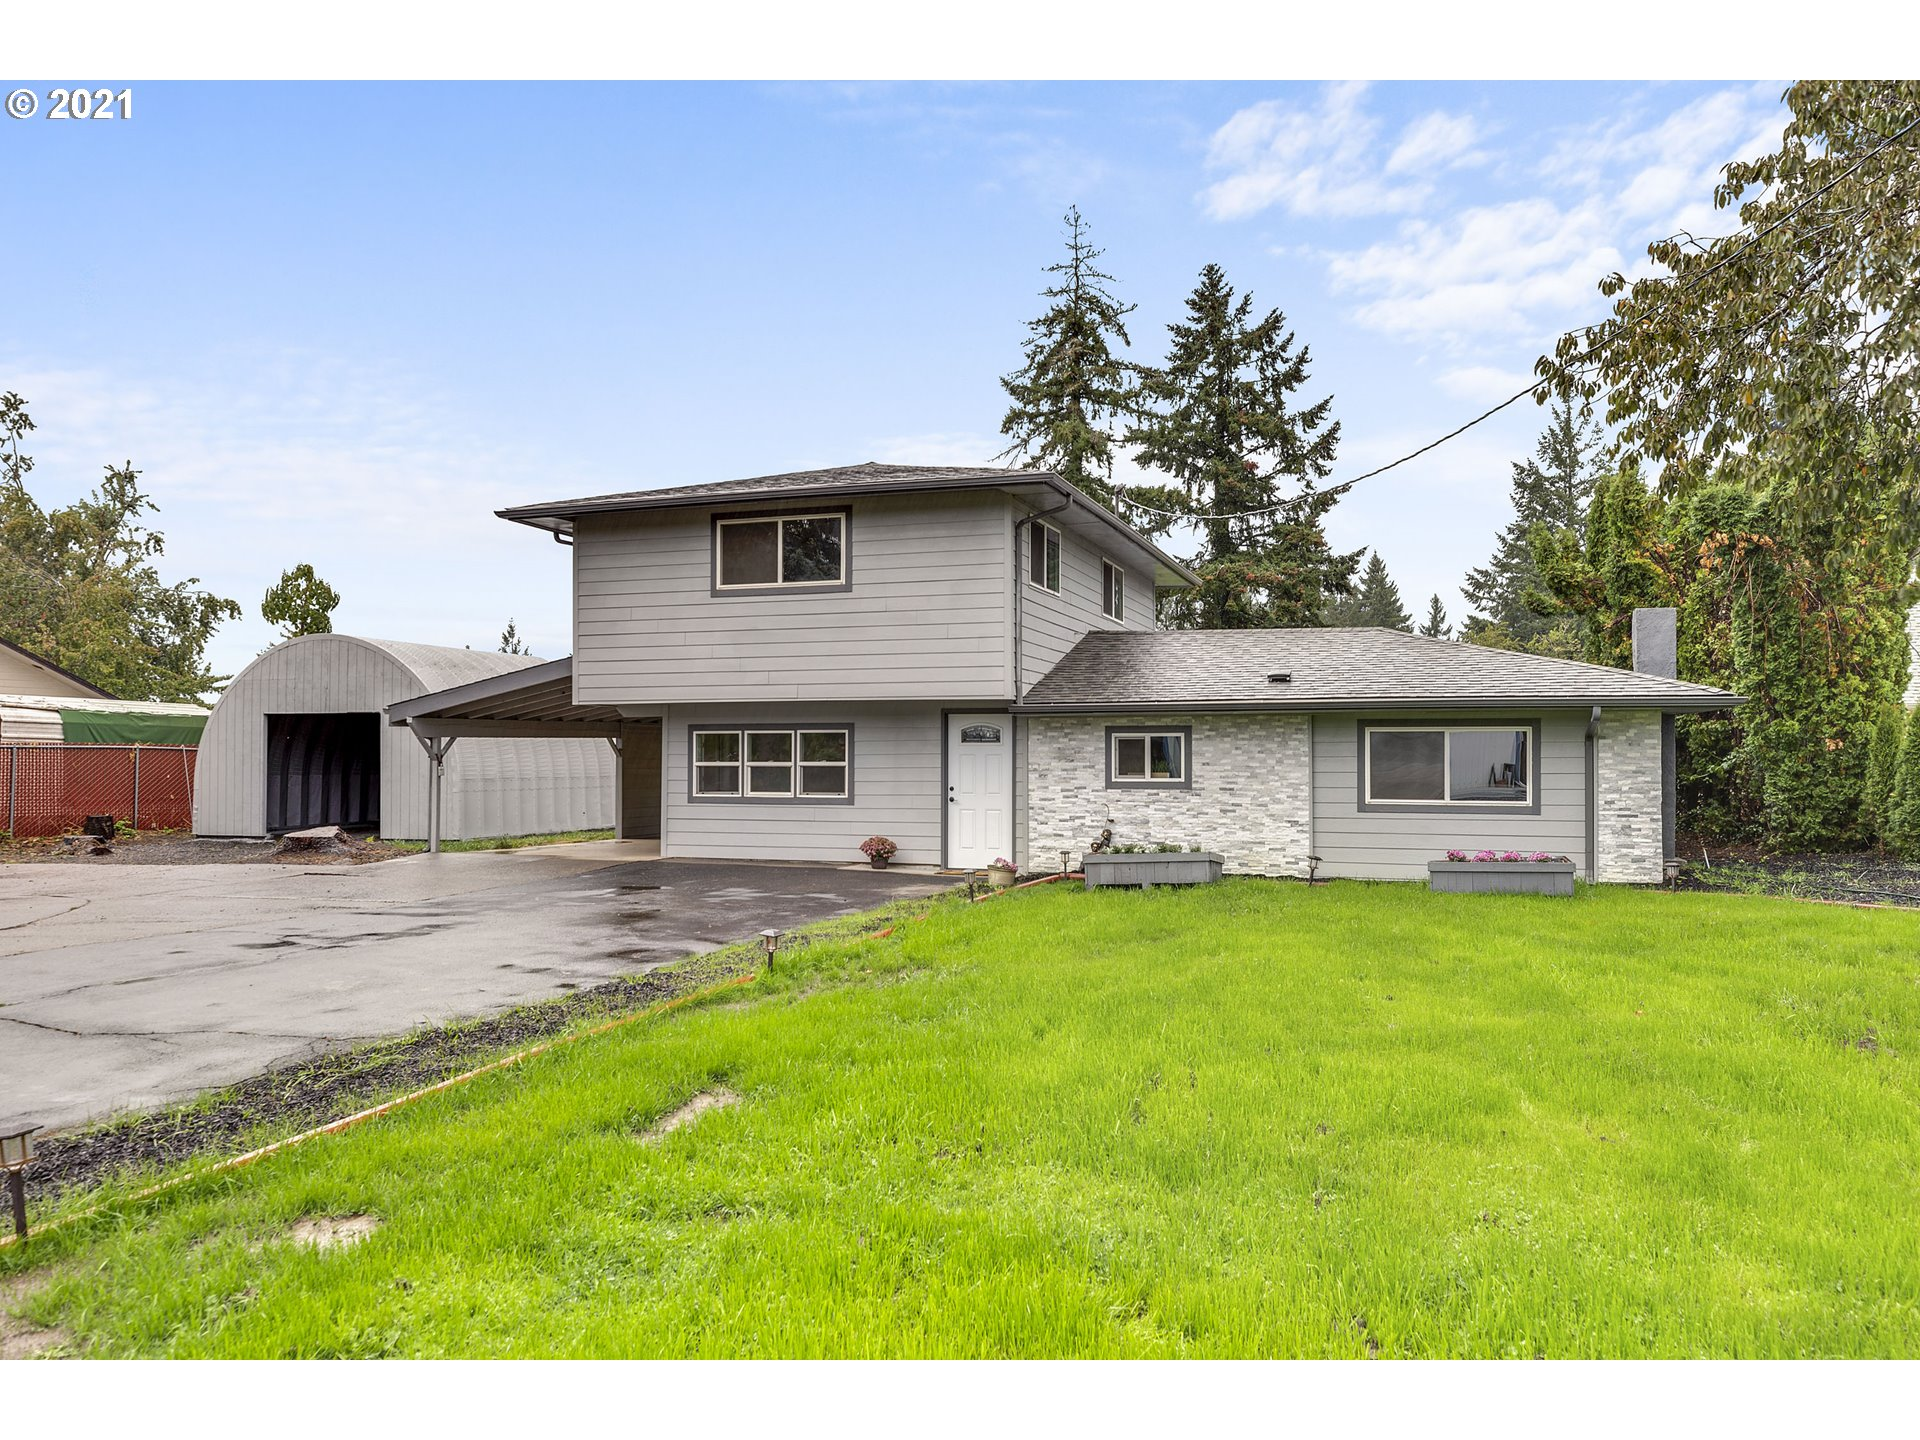 18398 S HOLLY LN, Oregon City OR 97045